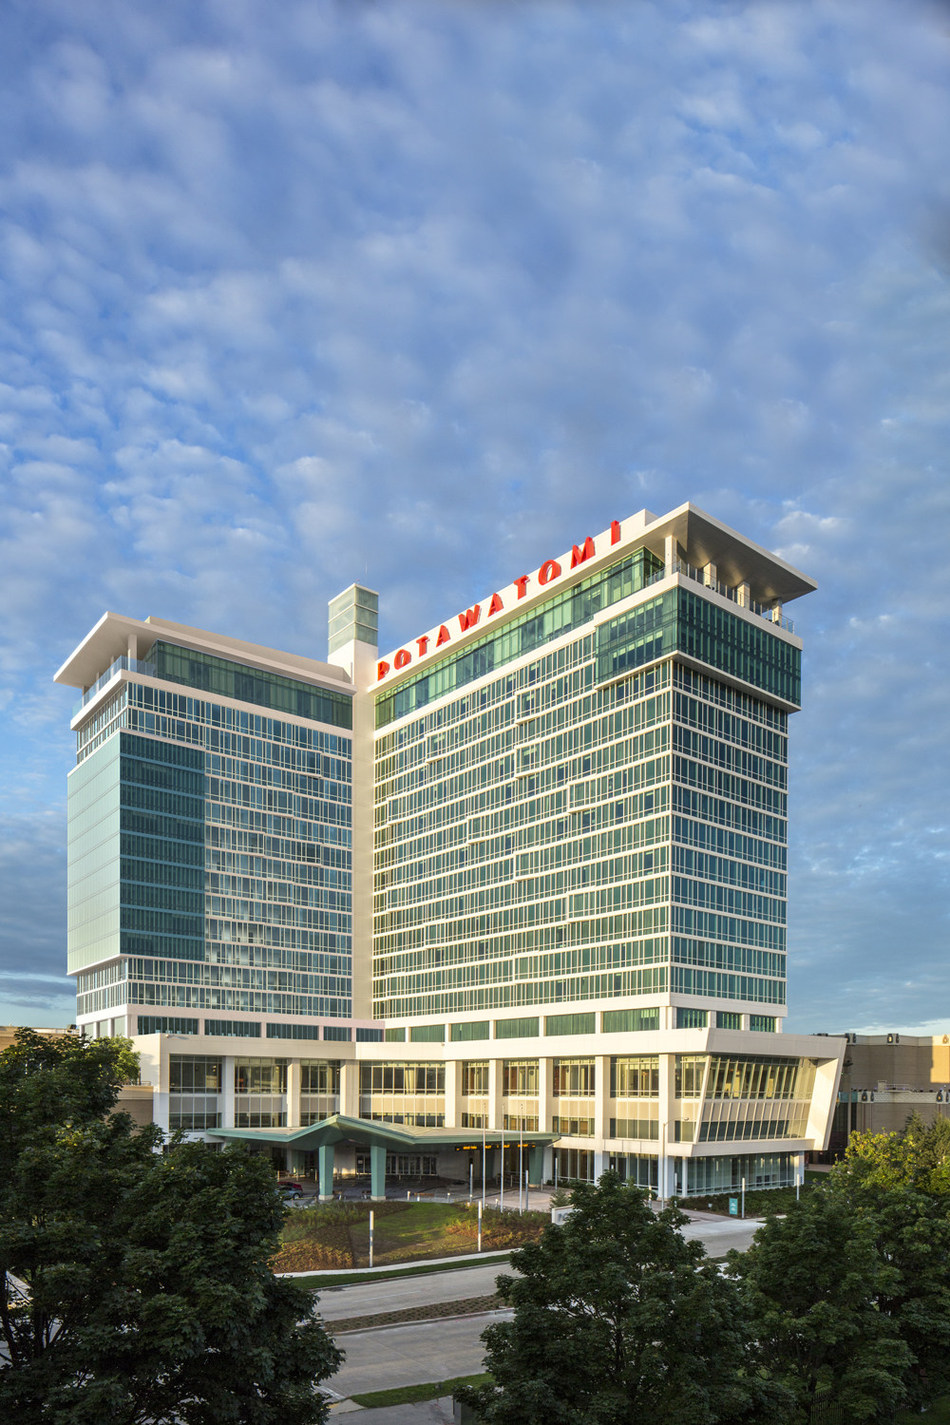 Potawatomi Hotel & Casino, located in Milwaukee, announced today its intentions to add a second tower to its hotel complex.